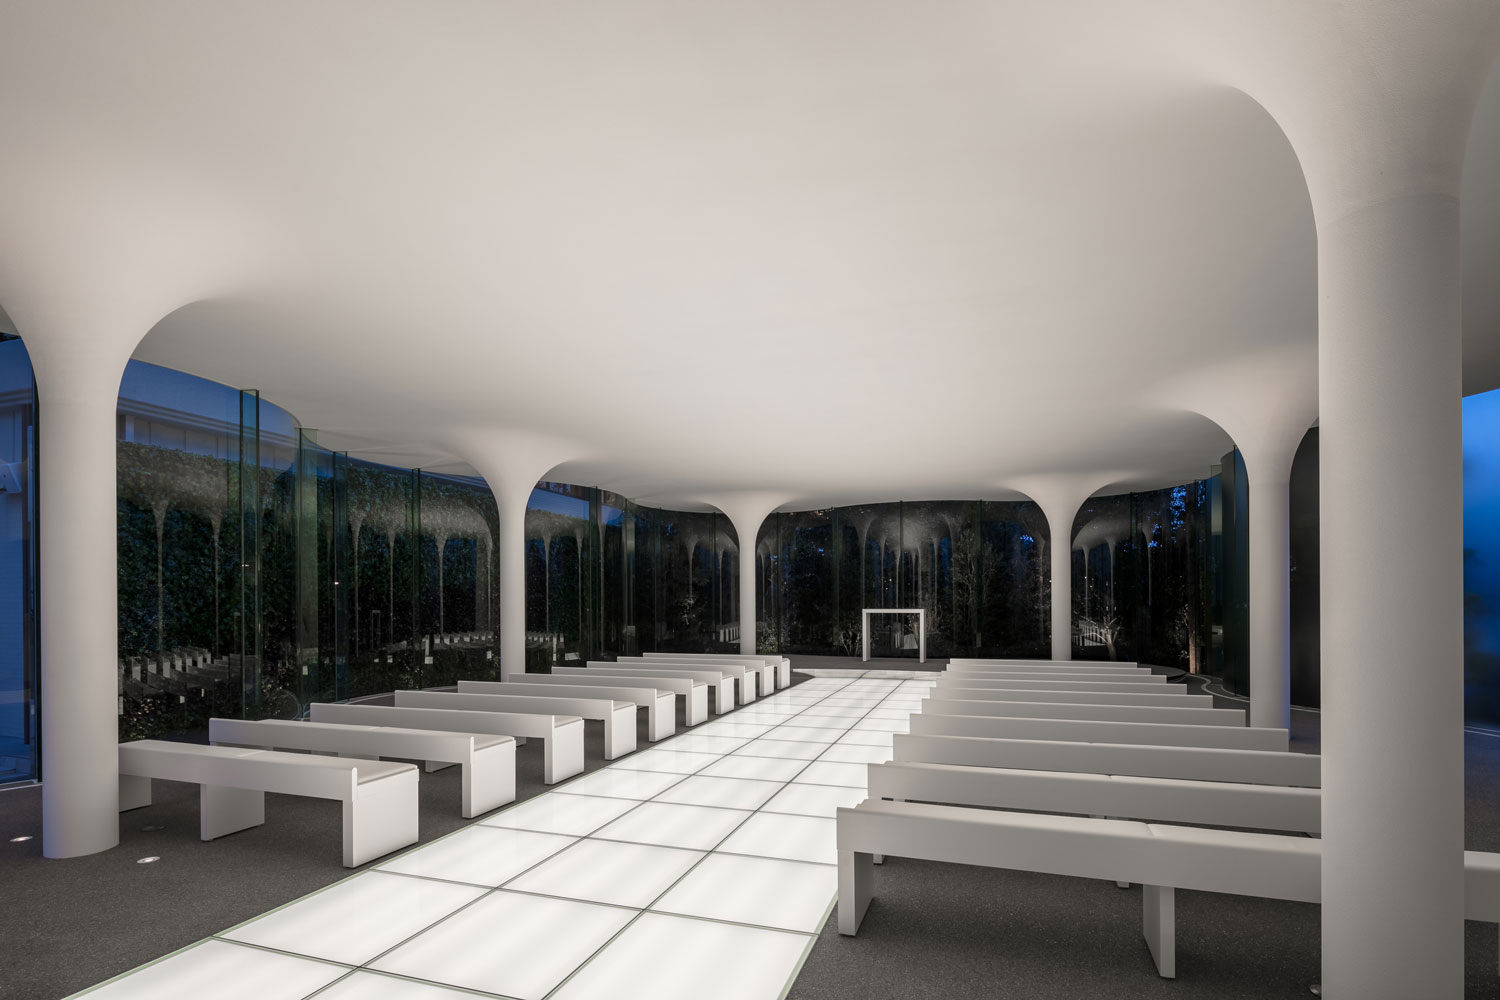 Cloud of Luster Chapel : KTX archiLAB-Visual Atelier 8-Architecture-10.jpg